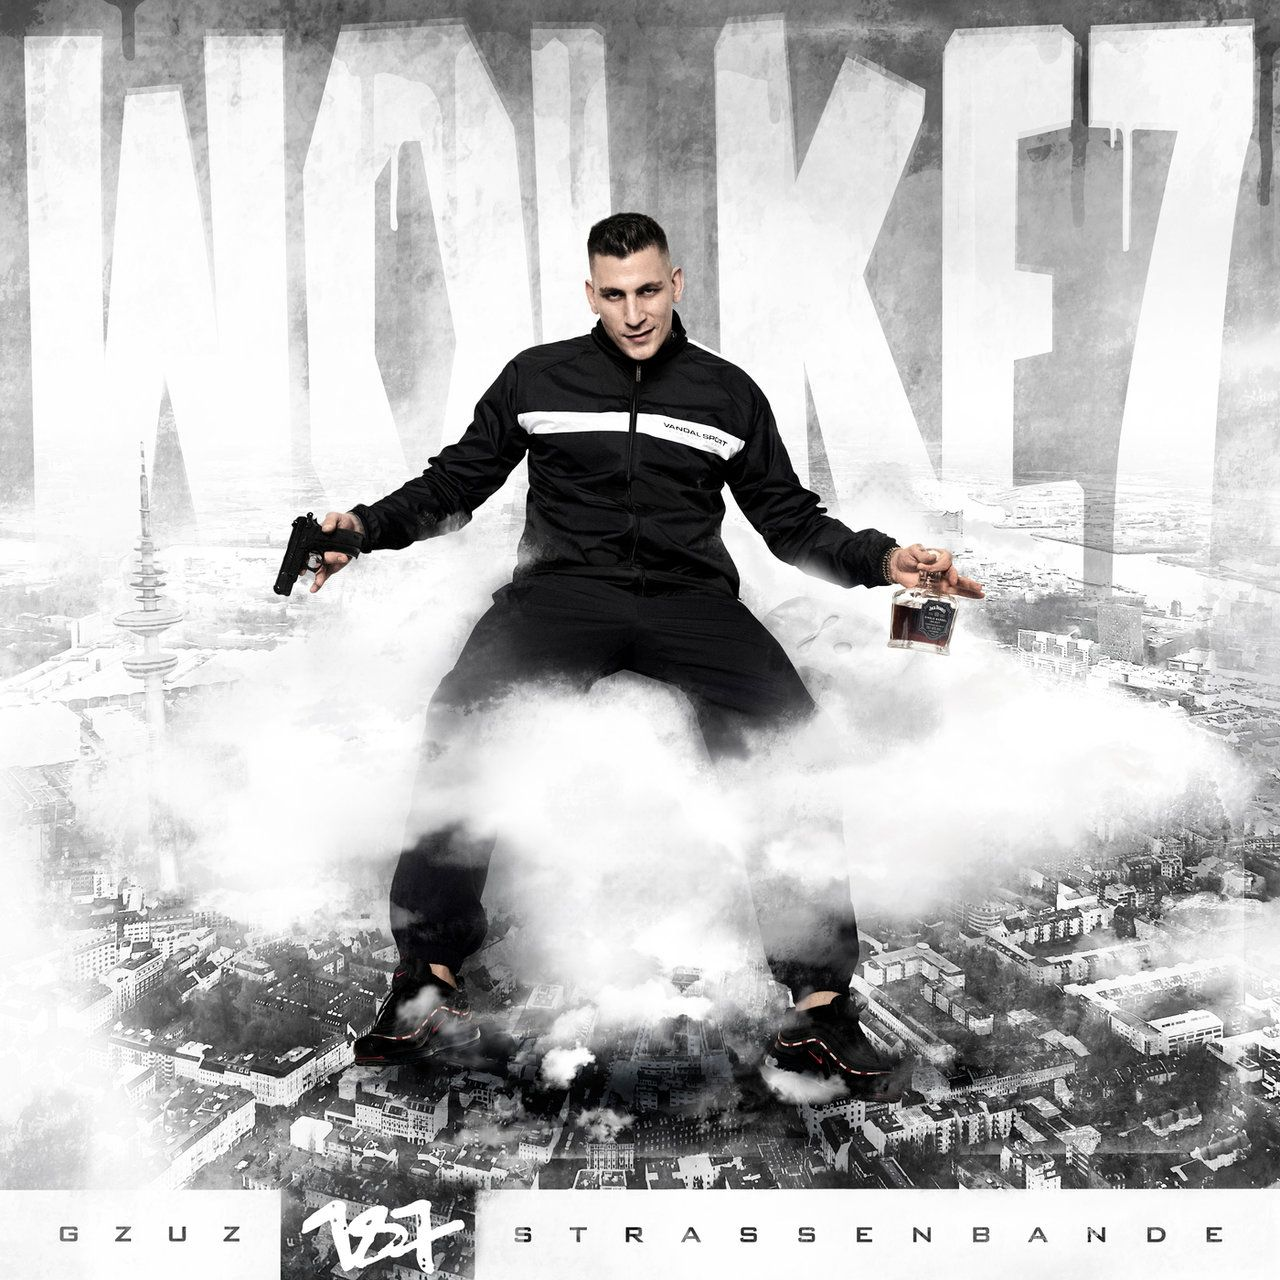 Gzuz - Wolke 7 album cover